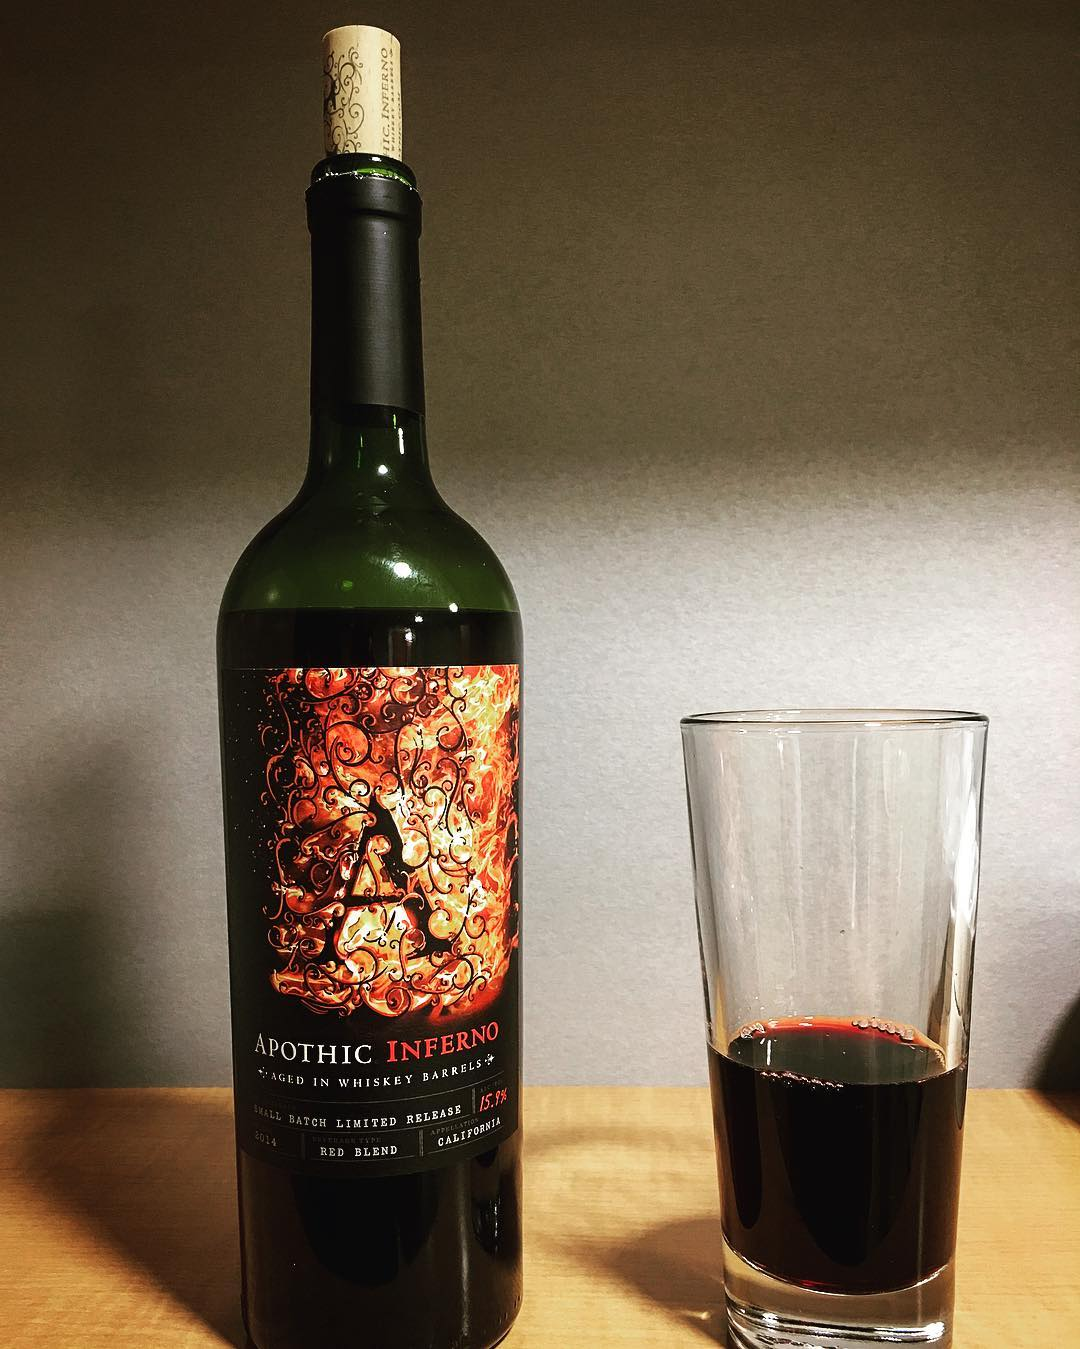 This is Apothic Inferno. A red blend aged in bourbon...